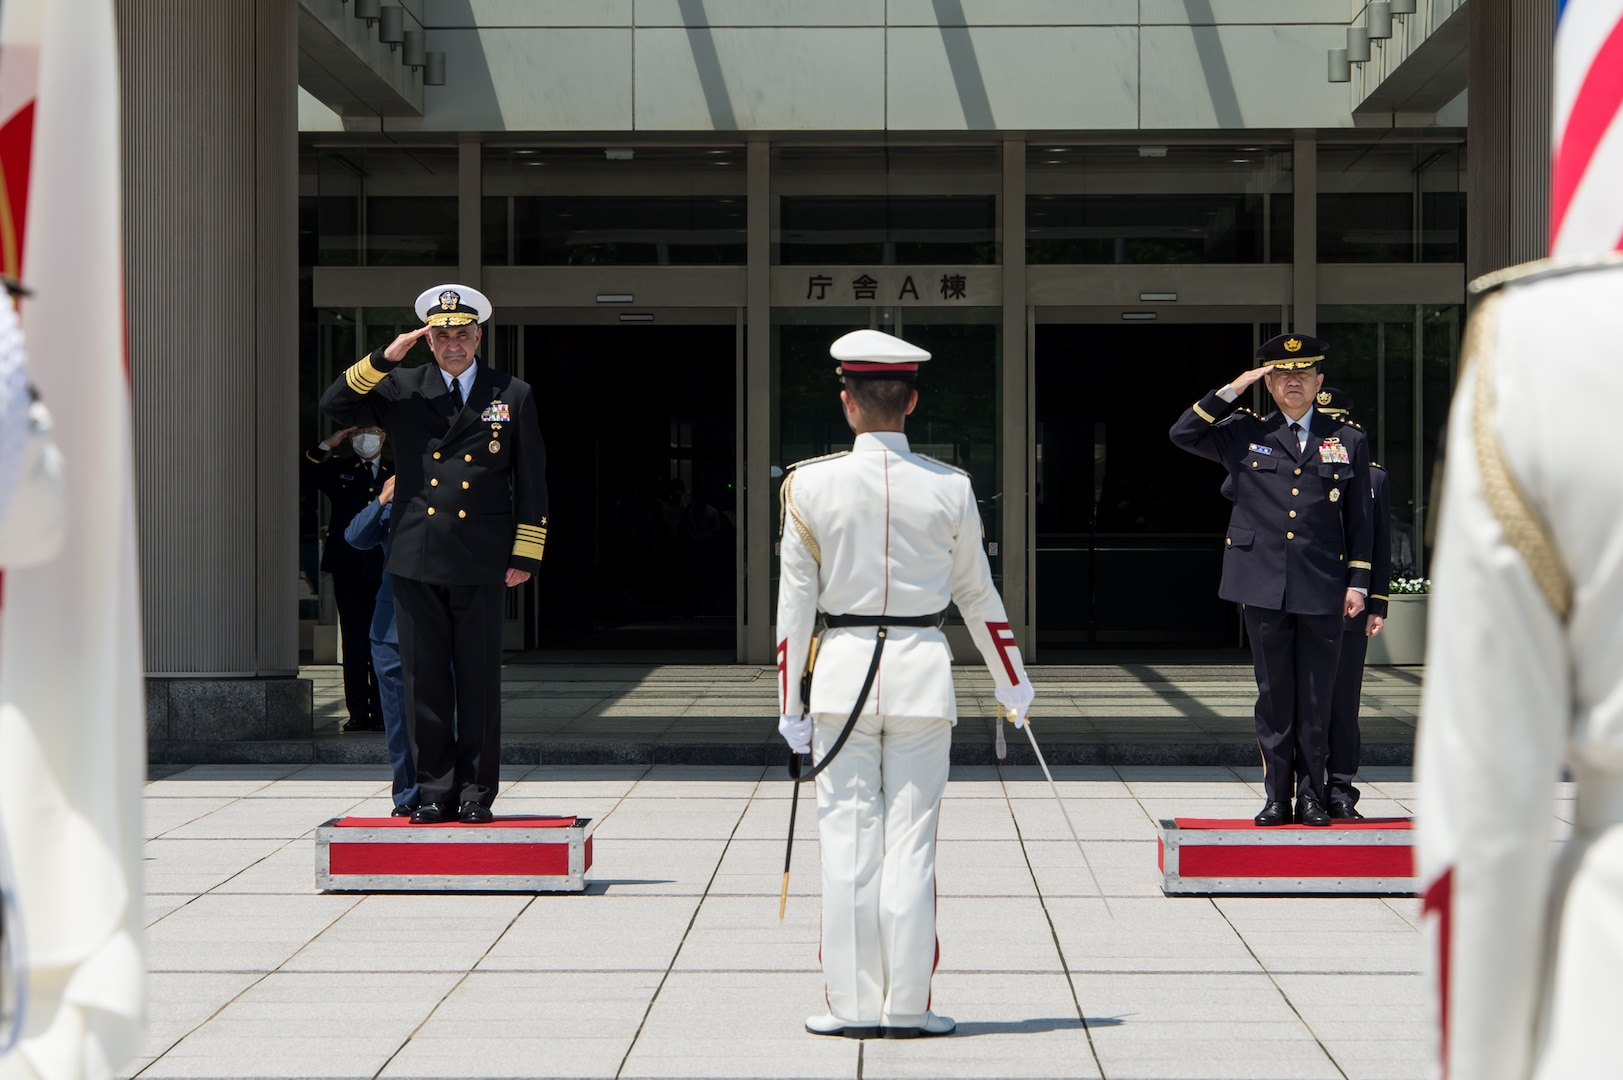 While in Japan, Richard meets with the Japanese Chairman of the Joint Chiefs of Staff, Japanese Joint Staff, Defense Minister, Foreign Minister and Secretary General. During these visits, he discussed with Japanese senior leaders regional situational awareness of threats and areas where the two nations can strengthen strategic deterrence.